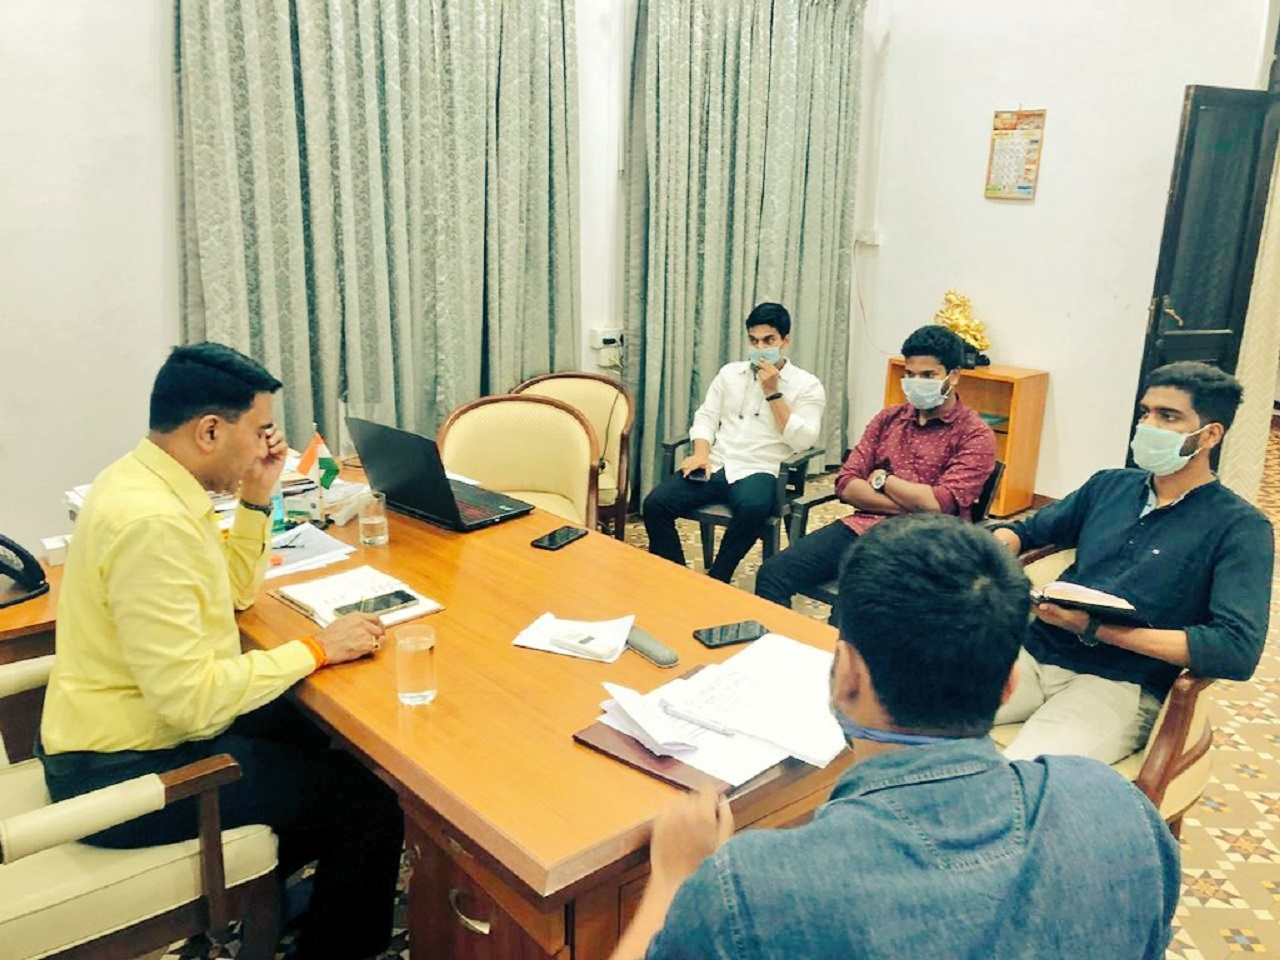 CM had fruitful interaction with Student Representatives of various colleges on COVID19 impact